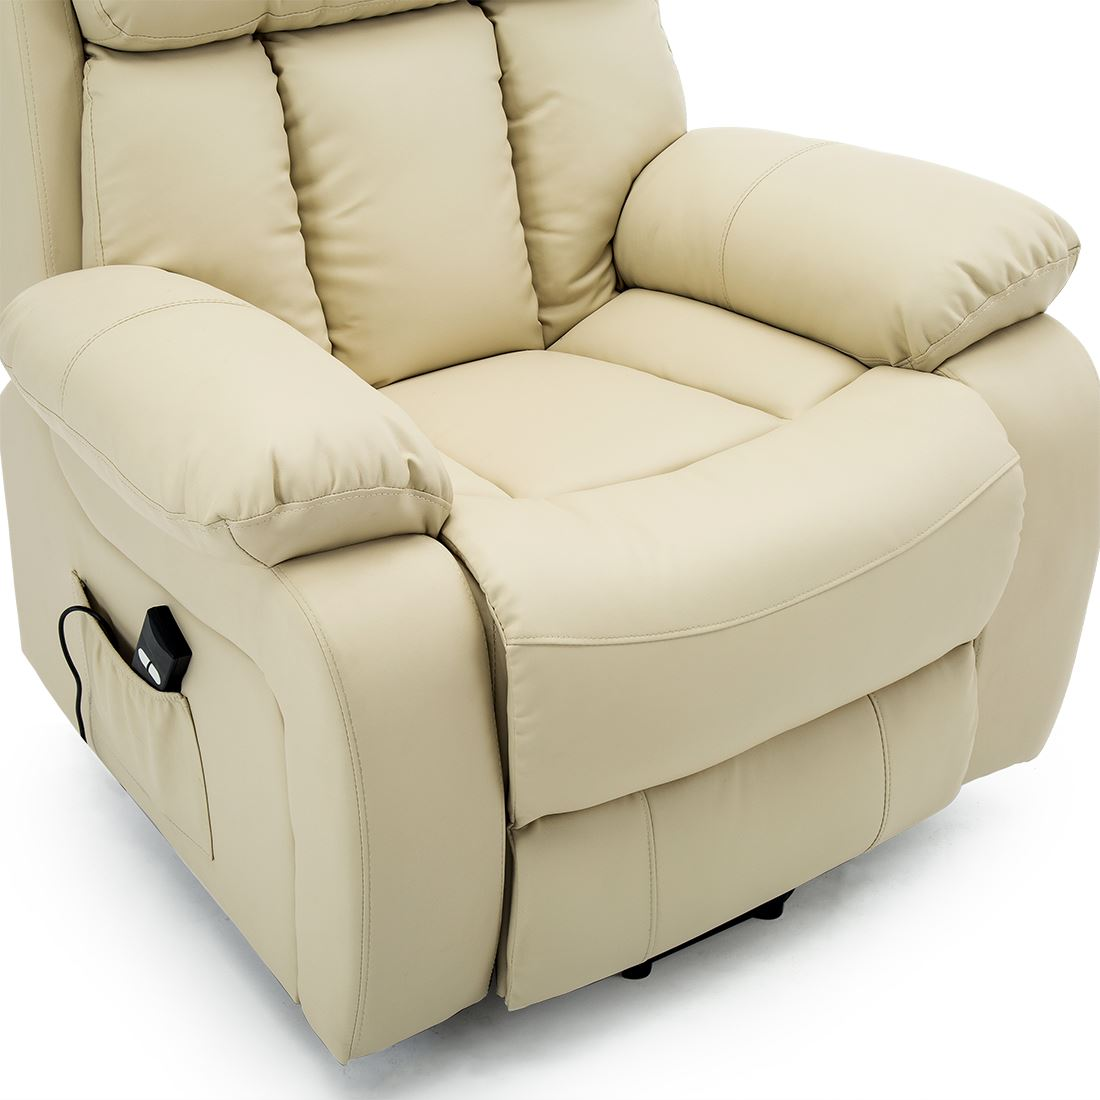 CHESTER-ELECTRIC-RISE-LEATHER-RECLINER-POWER-ARMCHAIR-HEATED-MASSAGE-SOFA-CHAIR thumbnail 25